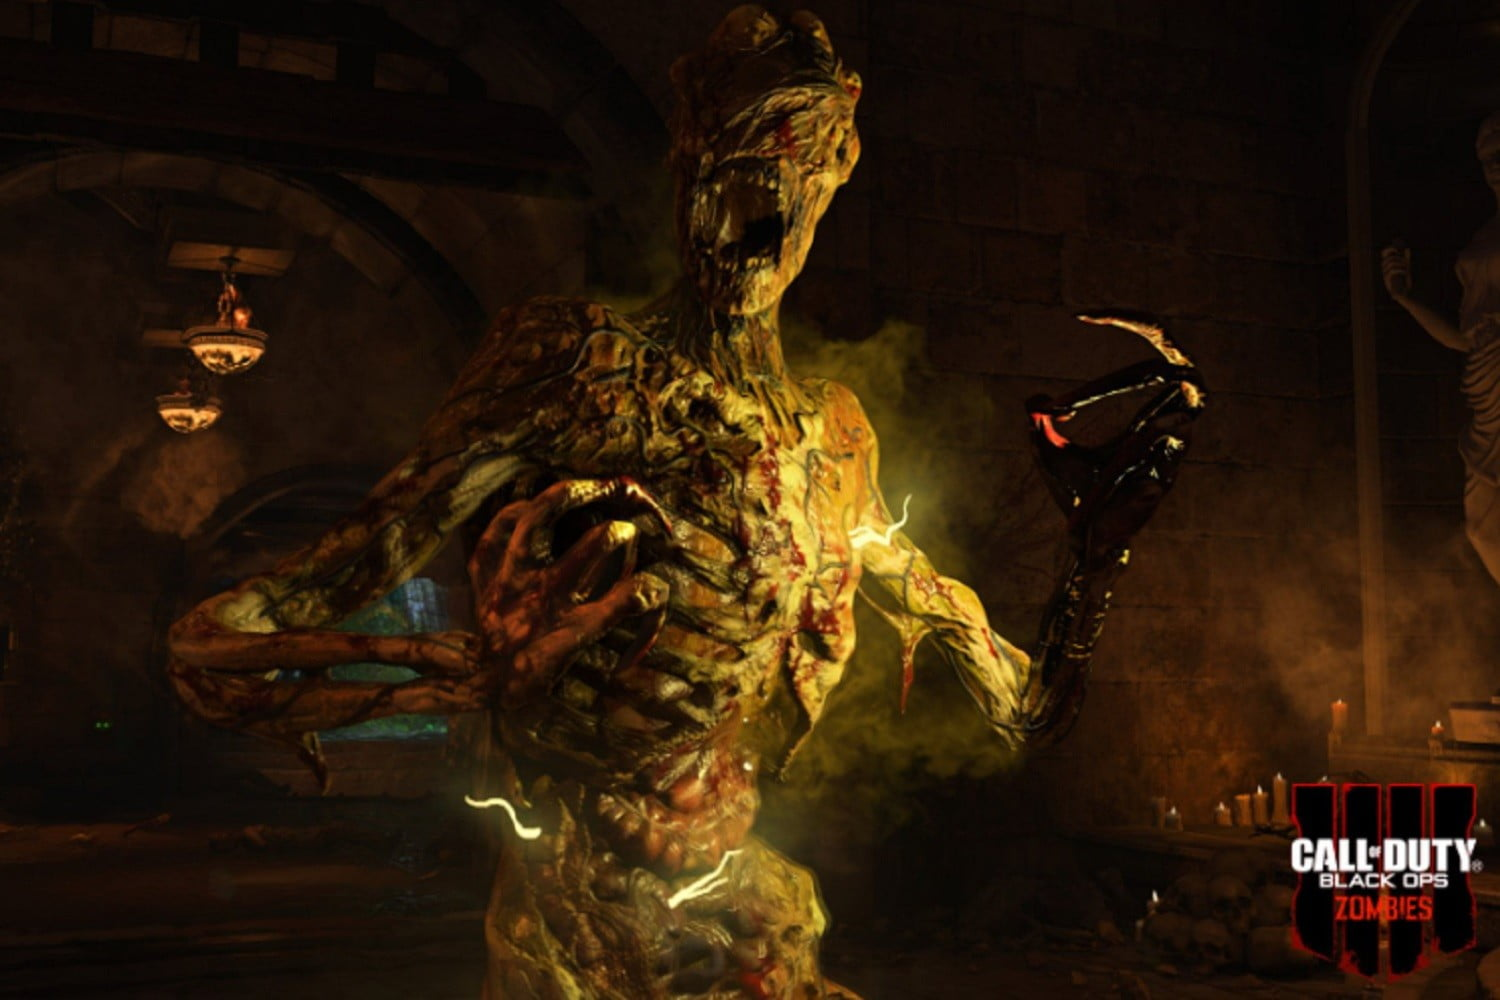 Call Of Duty Black Ops 4 Zombies Secrets Revealed By Fired